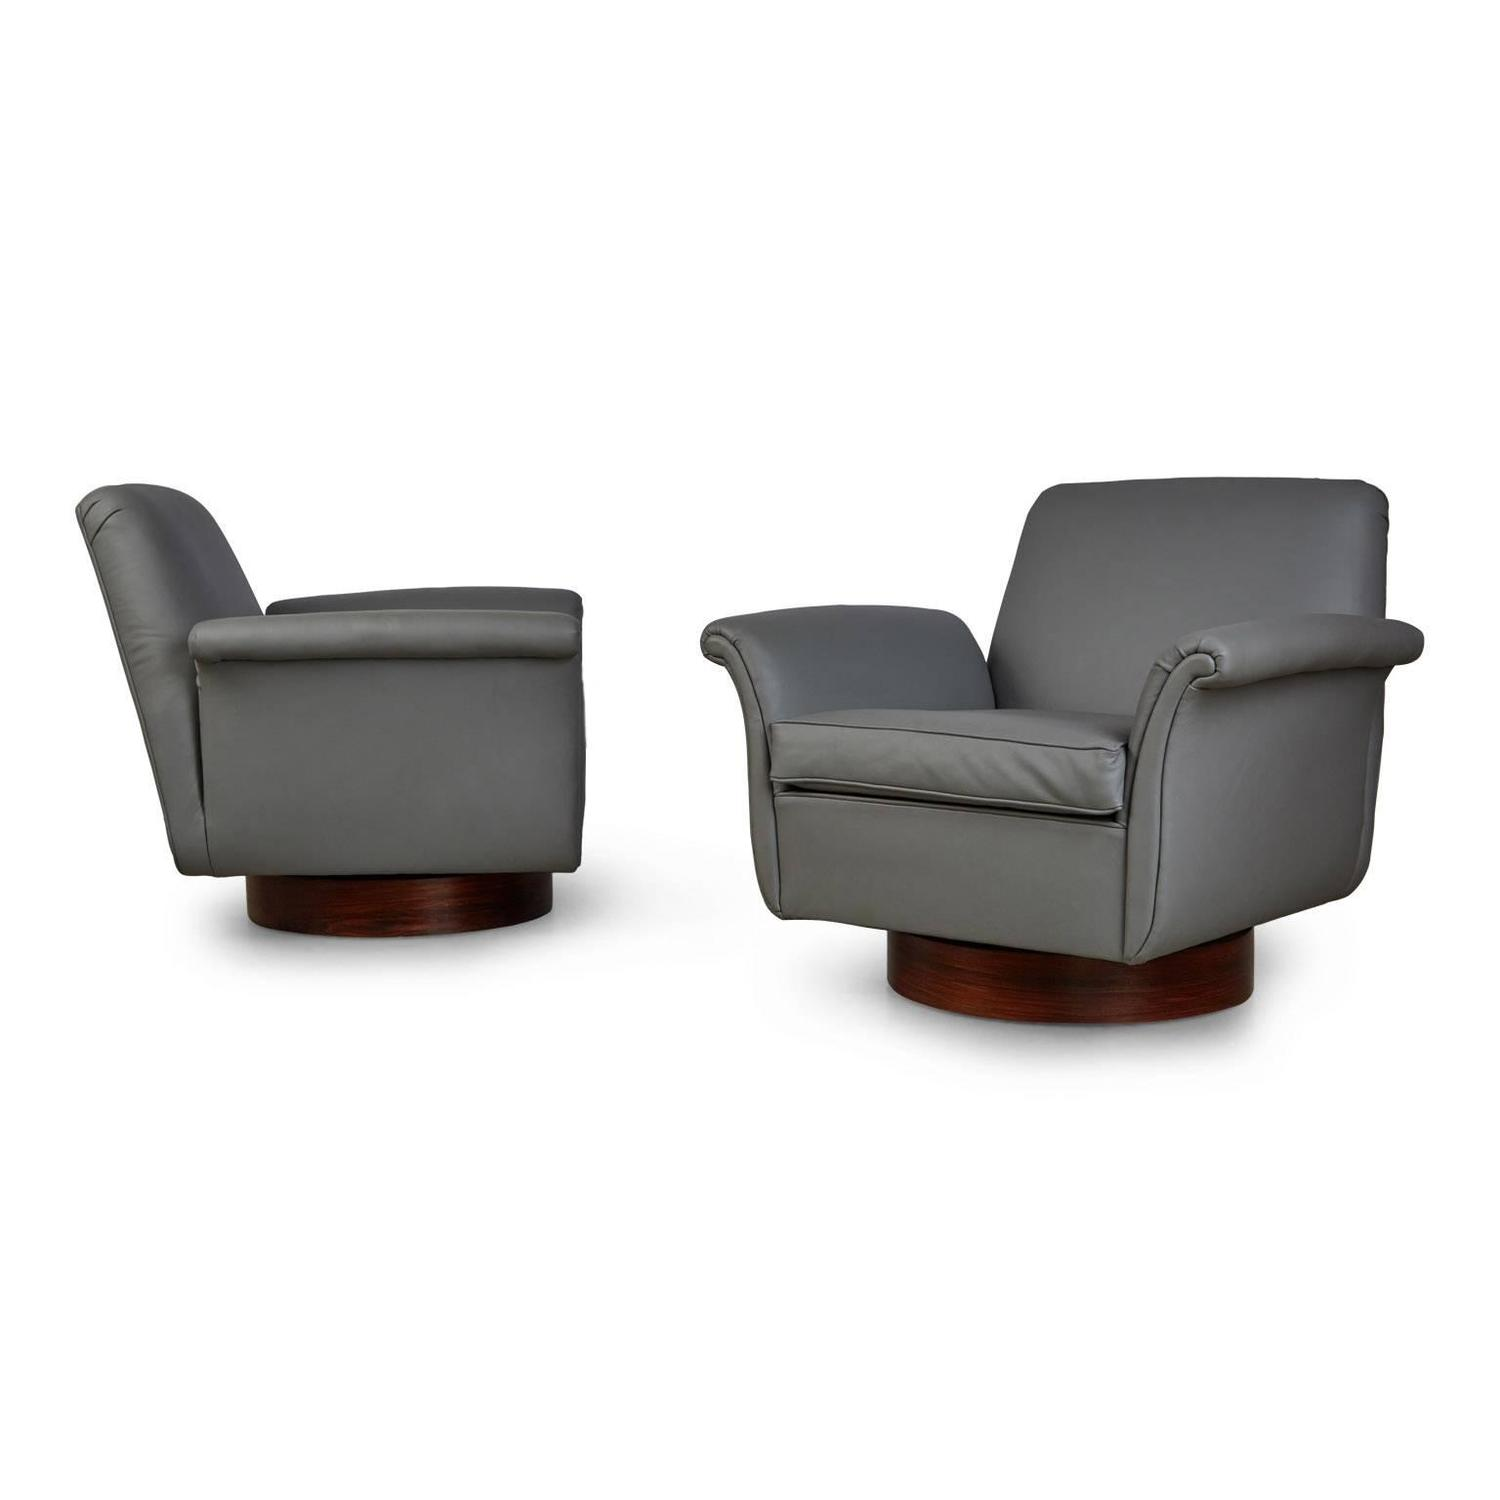 grey modern armchairs folding chaise lounge chair plastic pair of brazilian leather and rosewood swivel